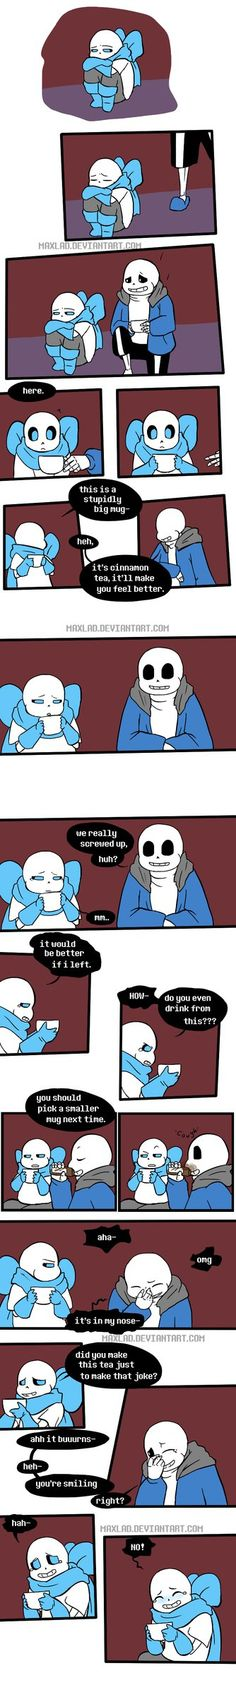 Previous: Next: That's how you hug in Underfell right??? Comic Dub: youtu.be/8ilL1-p2TDo